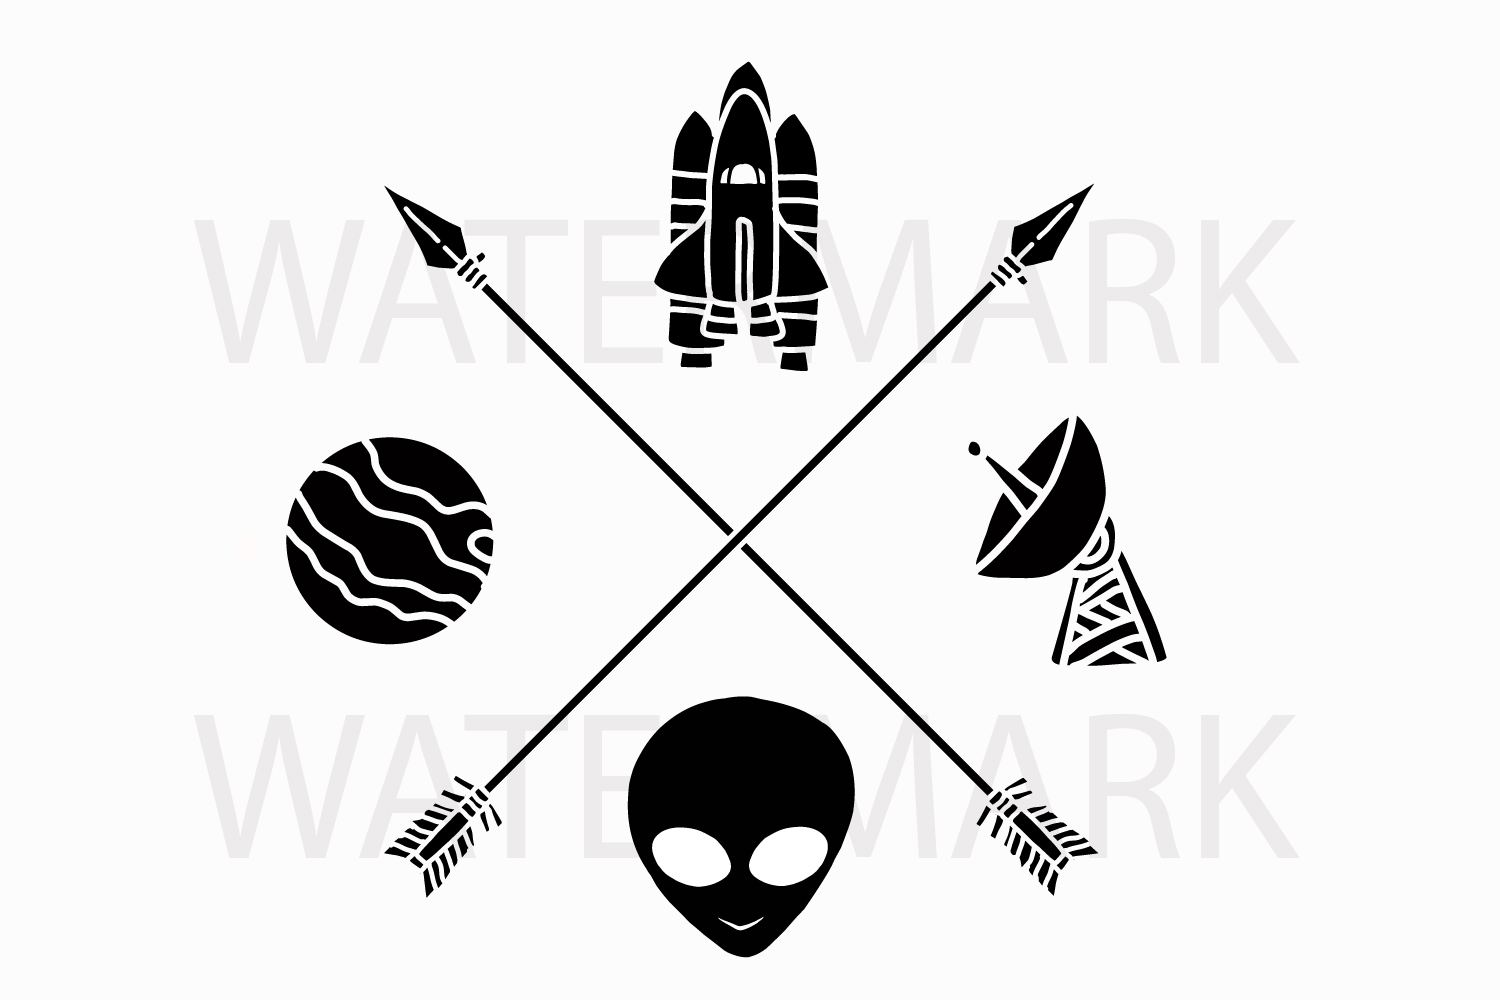 Two Arrow with Spaceship Planet Radio Station and Alien head - SVG/JPG/PNG Hand Drawing example image 1